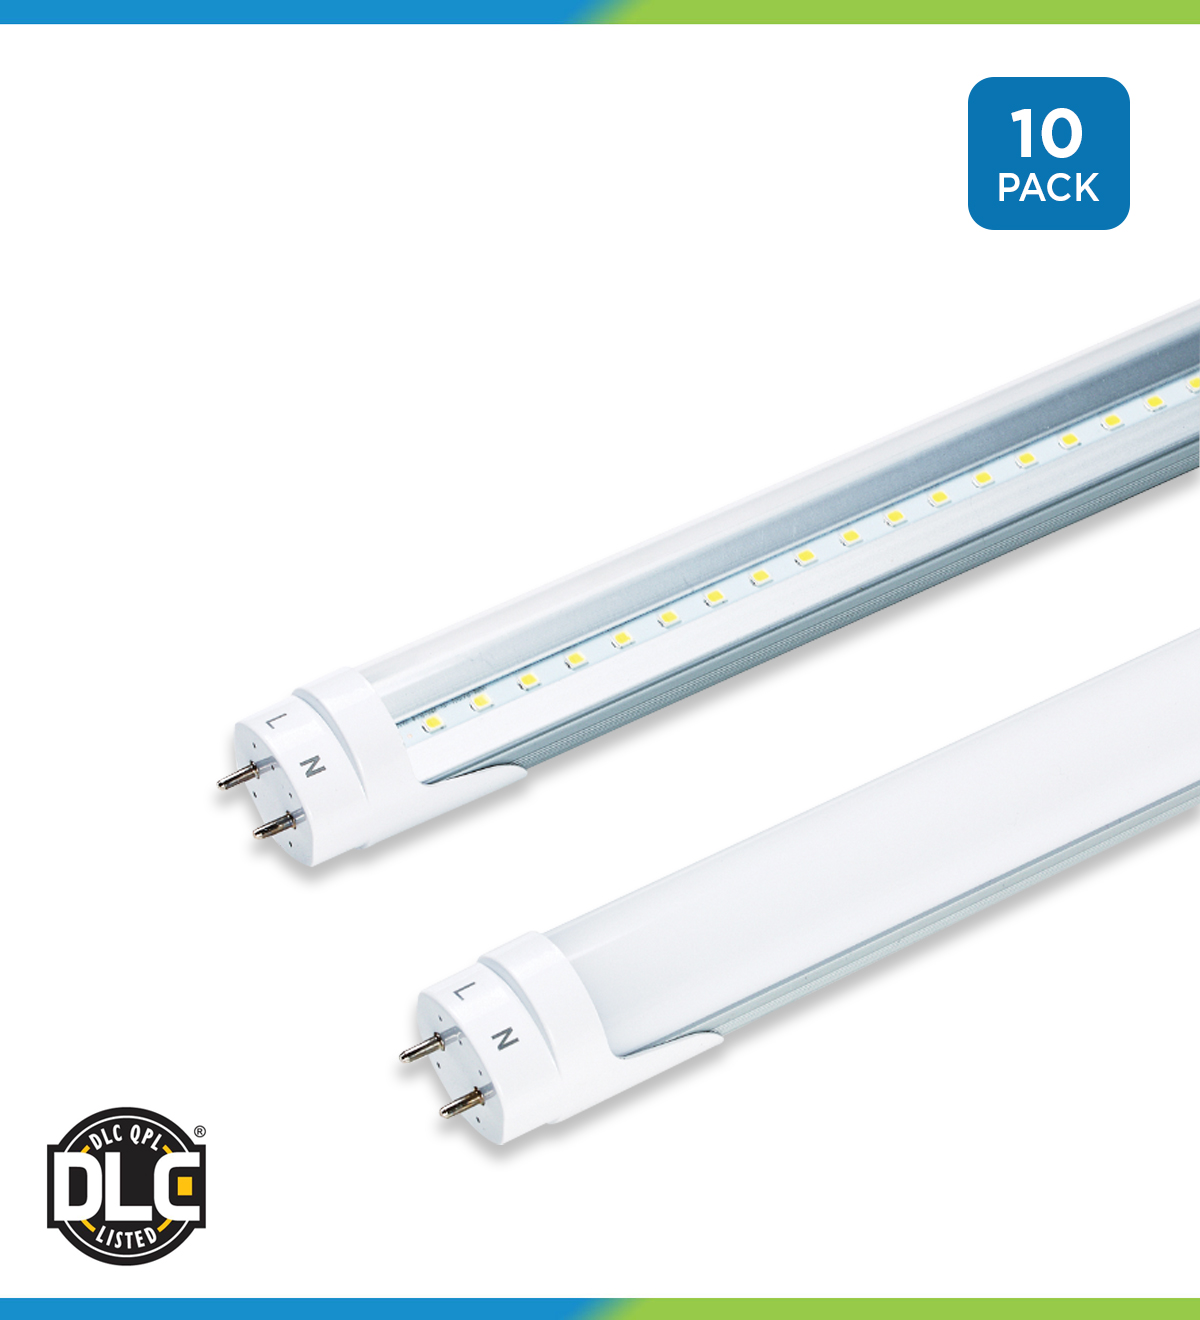 hight resolution of t8 led tubes 4 foot pack of 10 ballast bypass direct wire wiring 277 volt fluorescent light fixtures wiring get free image